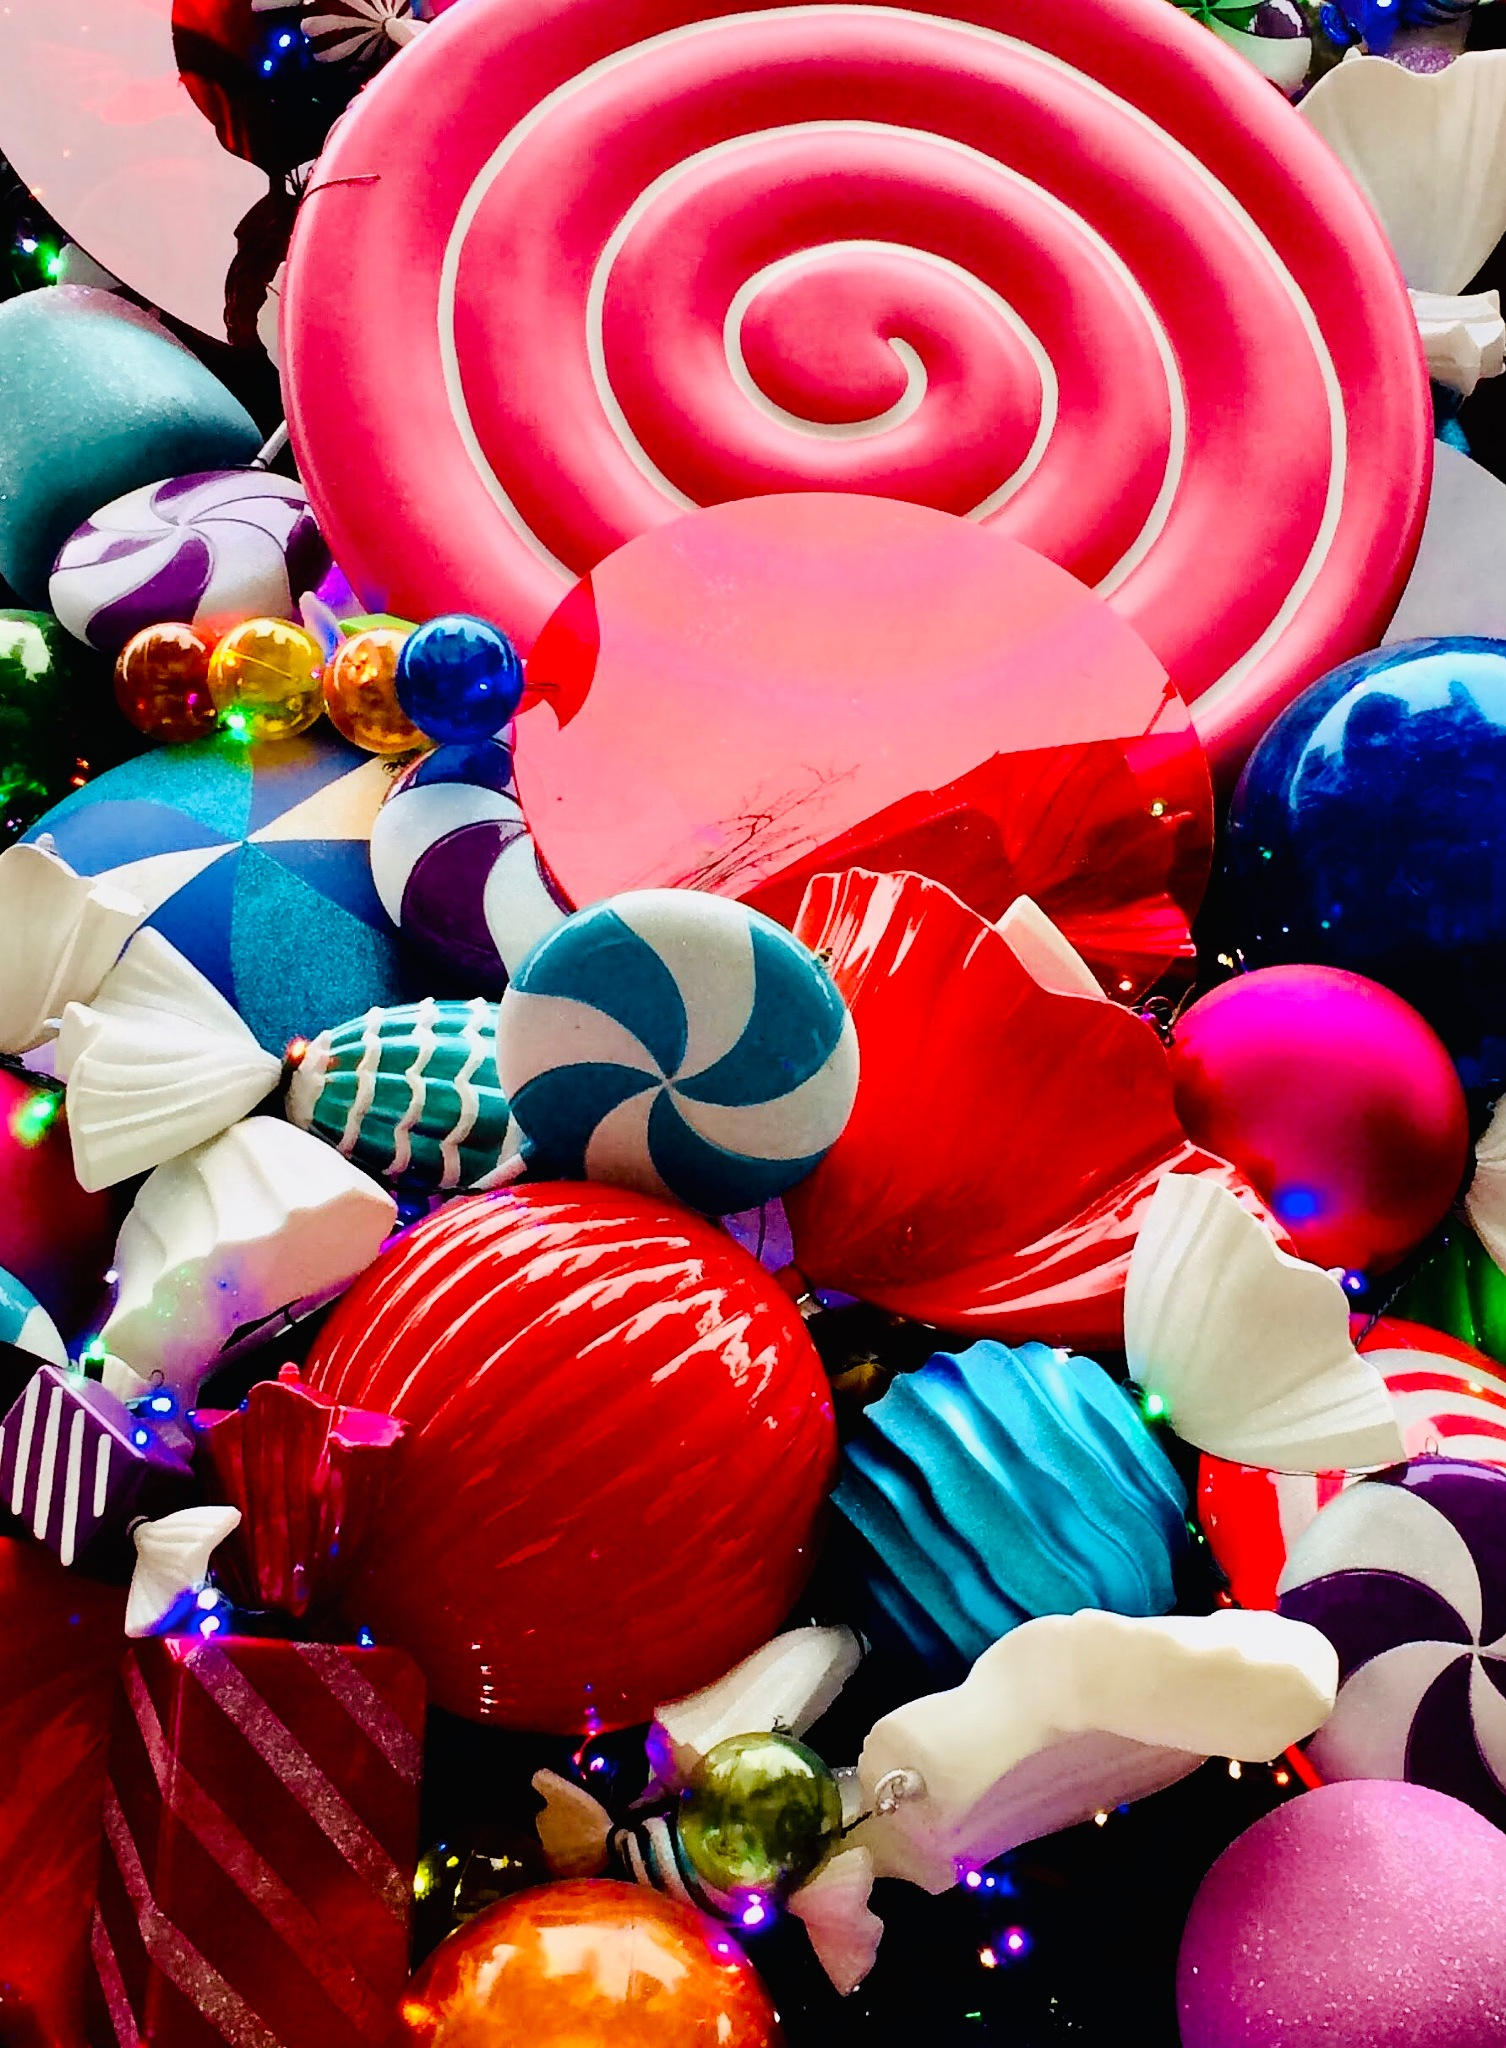 Candy Land by kal.talukdar.bos